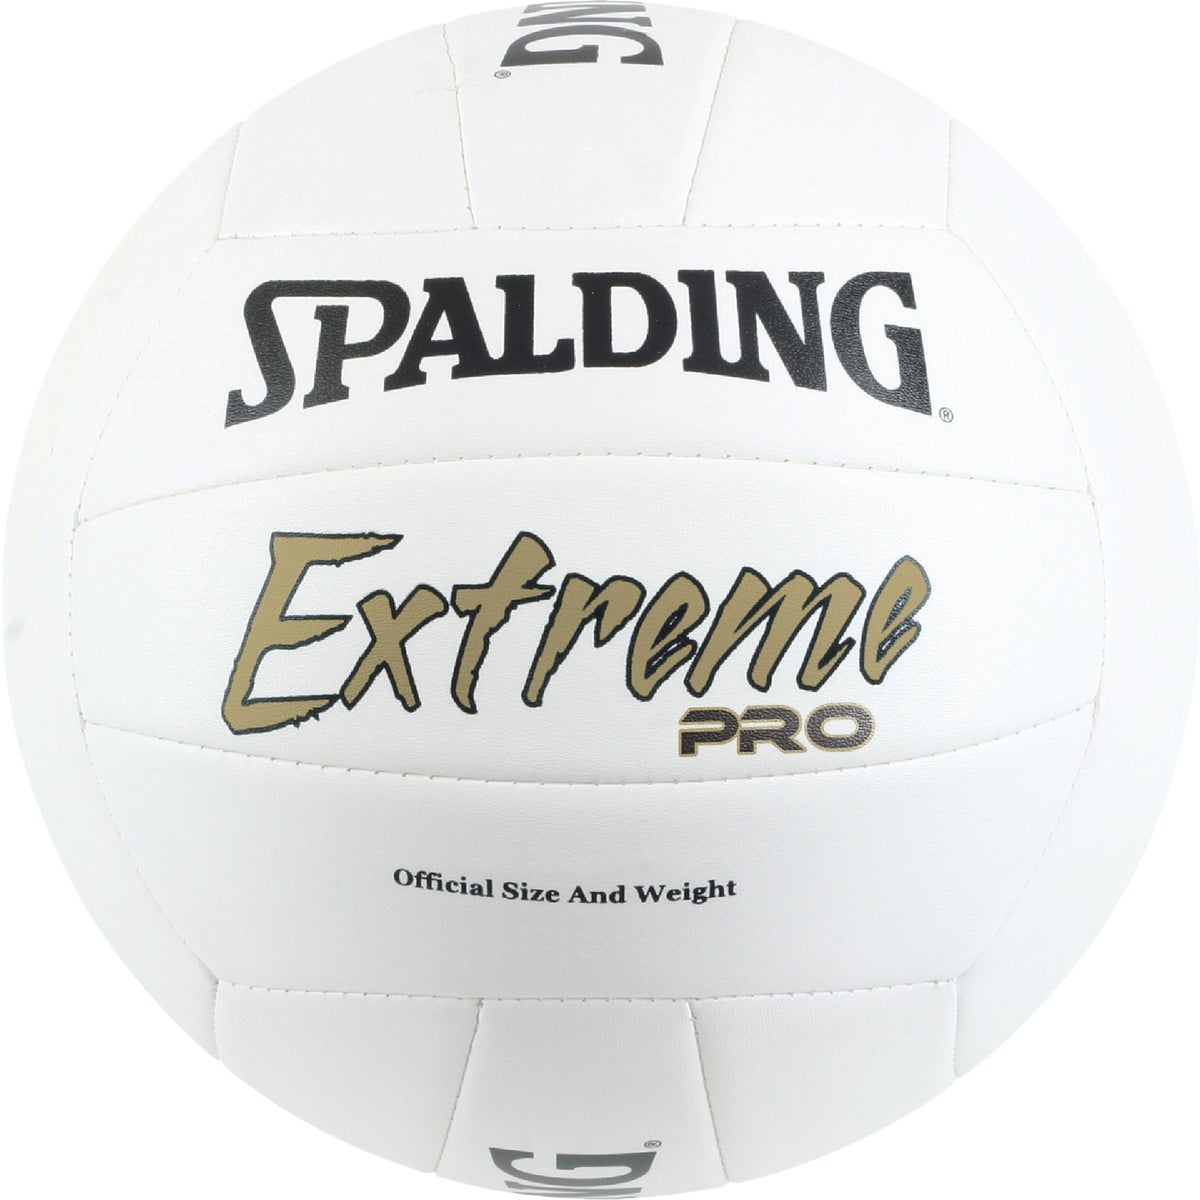 KOB VOLLEYBALL - 72-084 by Spalding Sports